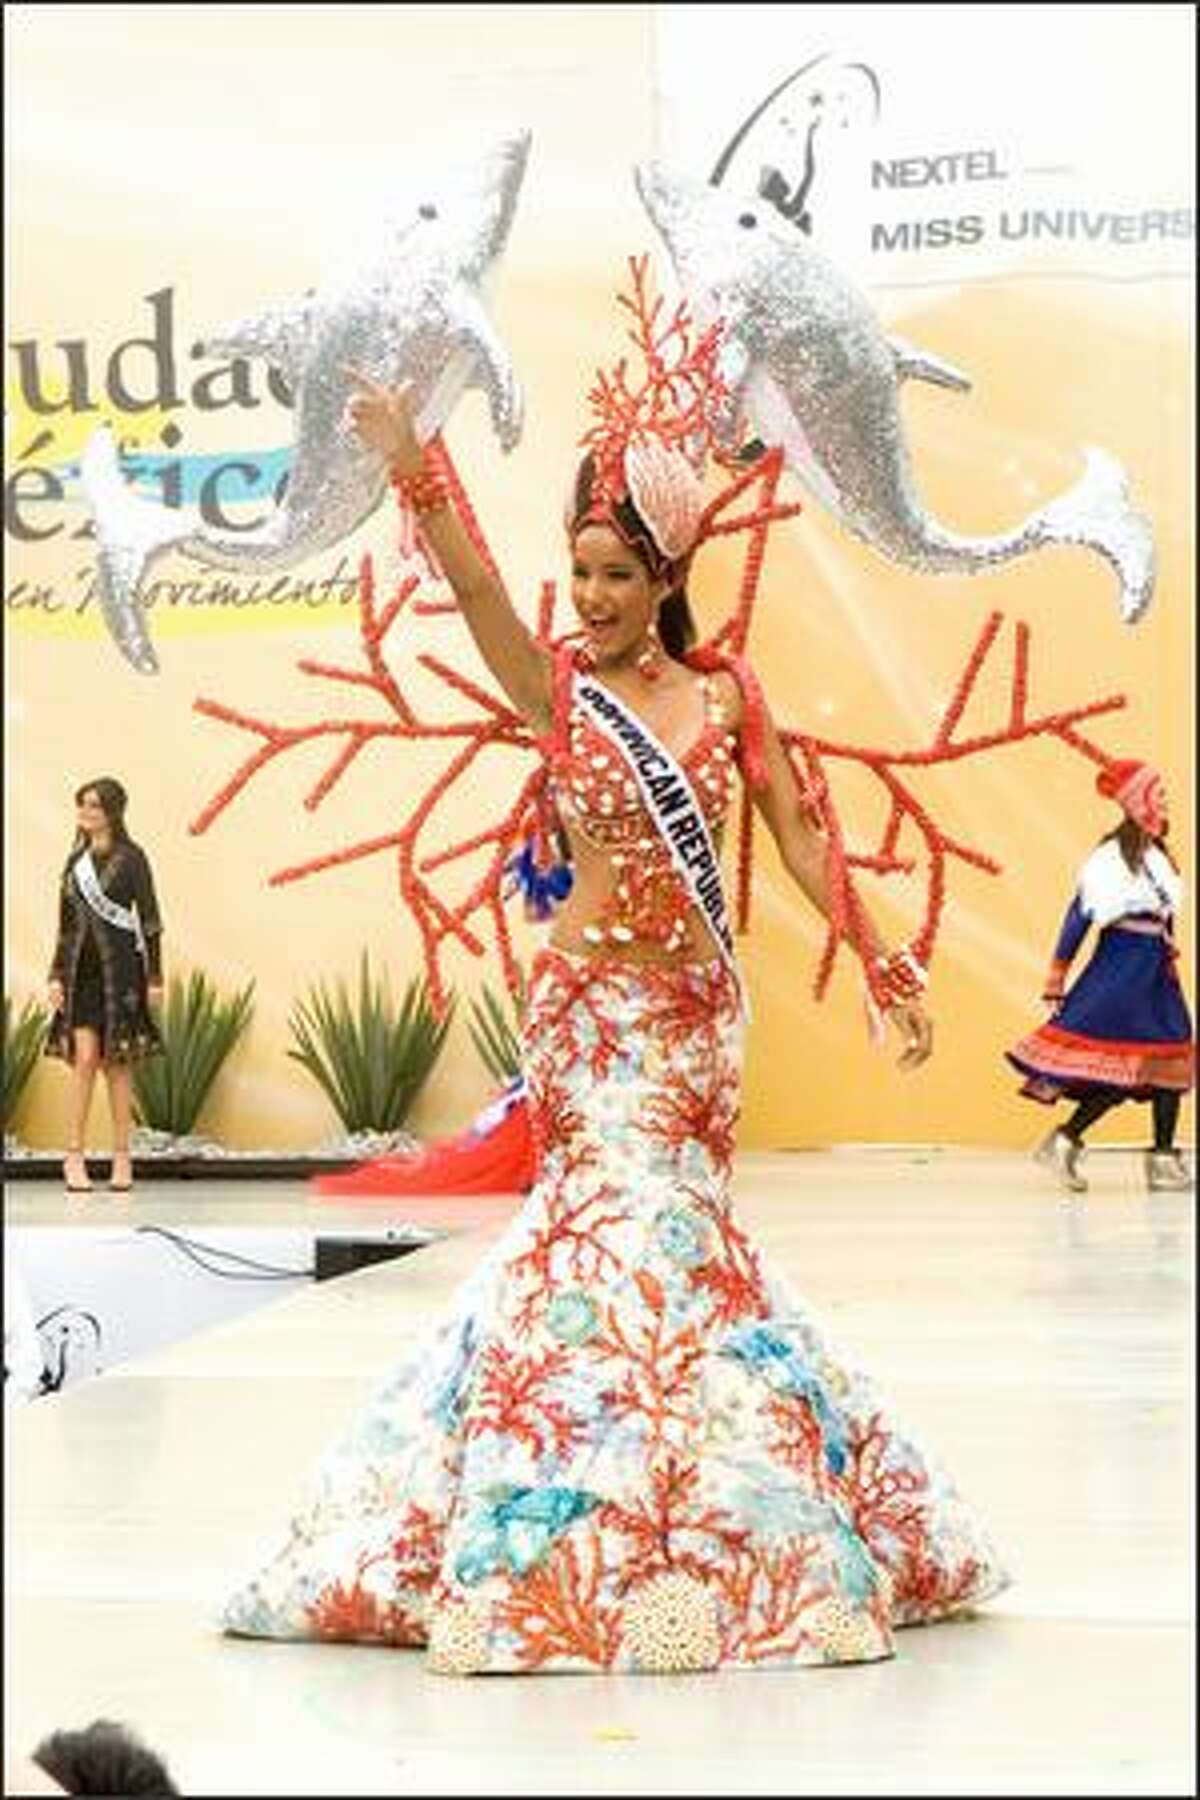 Massiel Taveras, Miss Dominican Republic 2007, participates in the 2007 Miss Universe National Costume Show at the Angel of Independence in Mexico City on May 20.